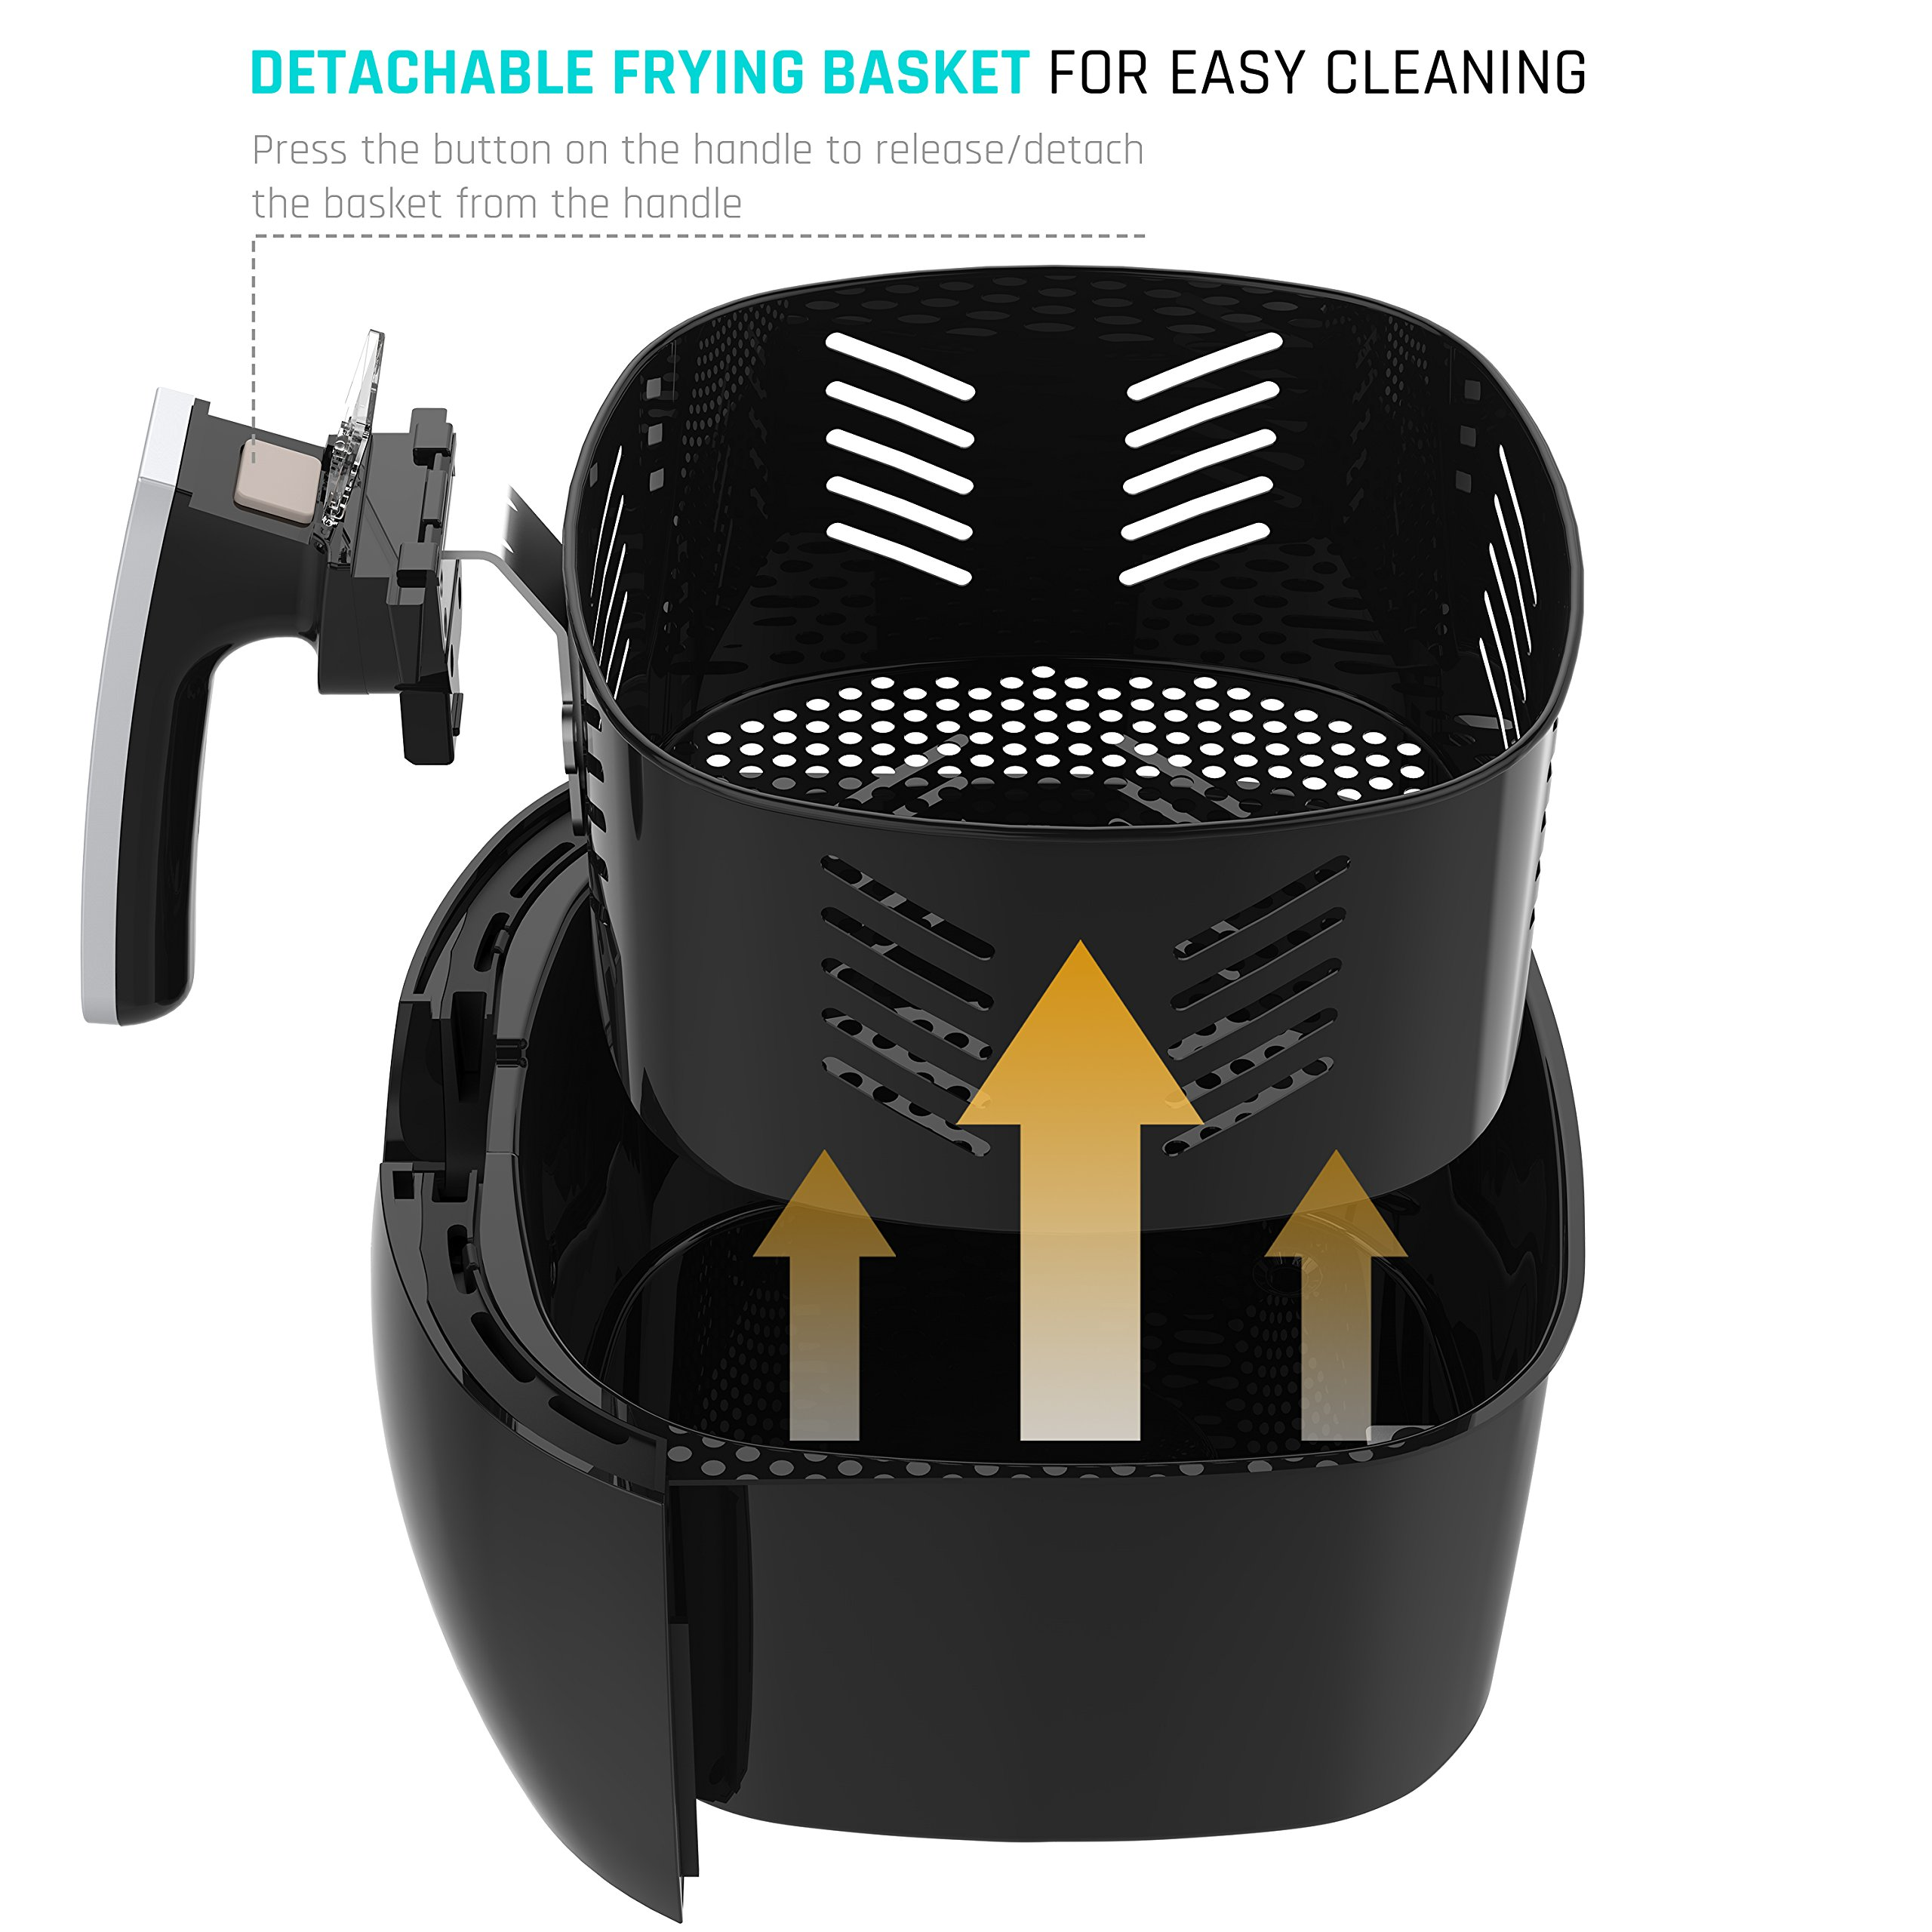 Air FryerLOVSHARE Touch Screen Control Oil Free Electric Air Fryer with Rapid Air Circulation Technology, Digital Display Smart Programs with Automatic and Manual Timer & Temperature Controls,3L by LOVSHARE (Image #4)